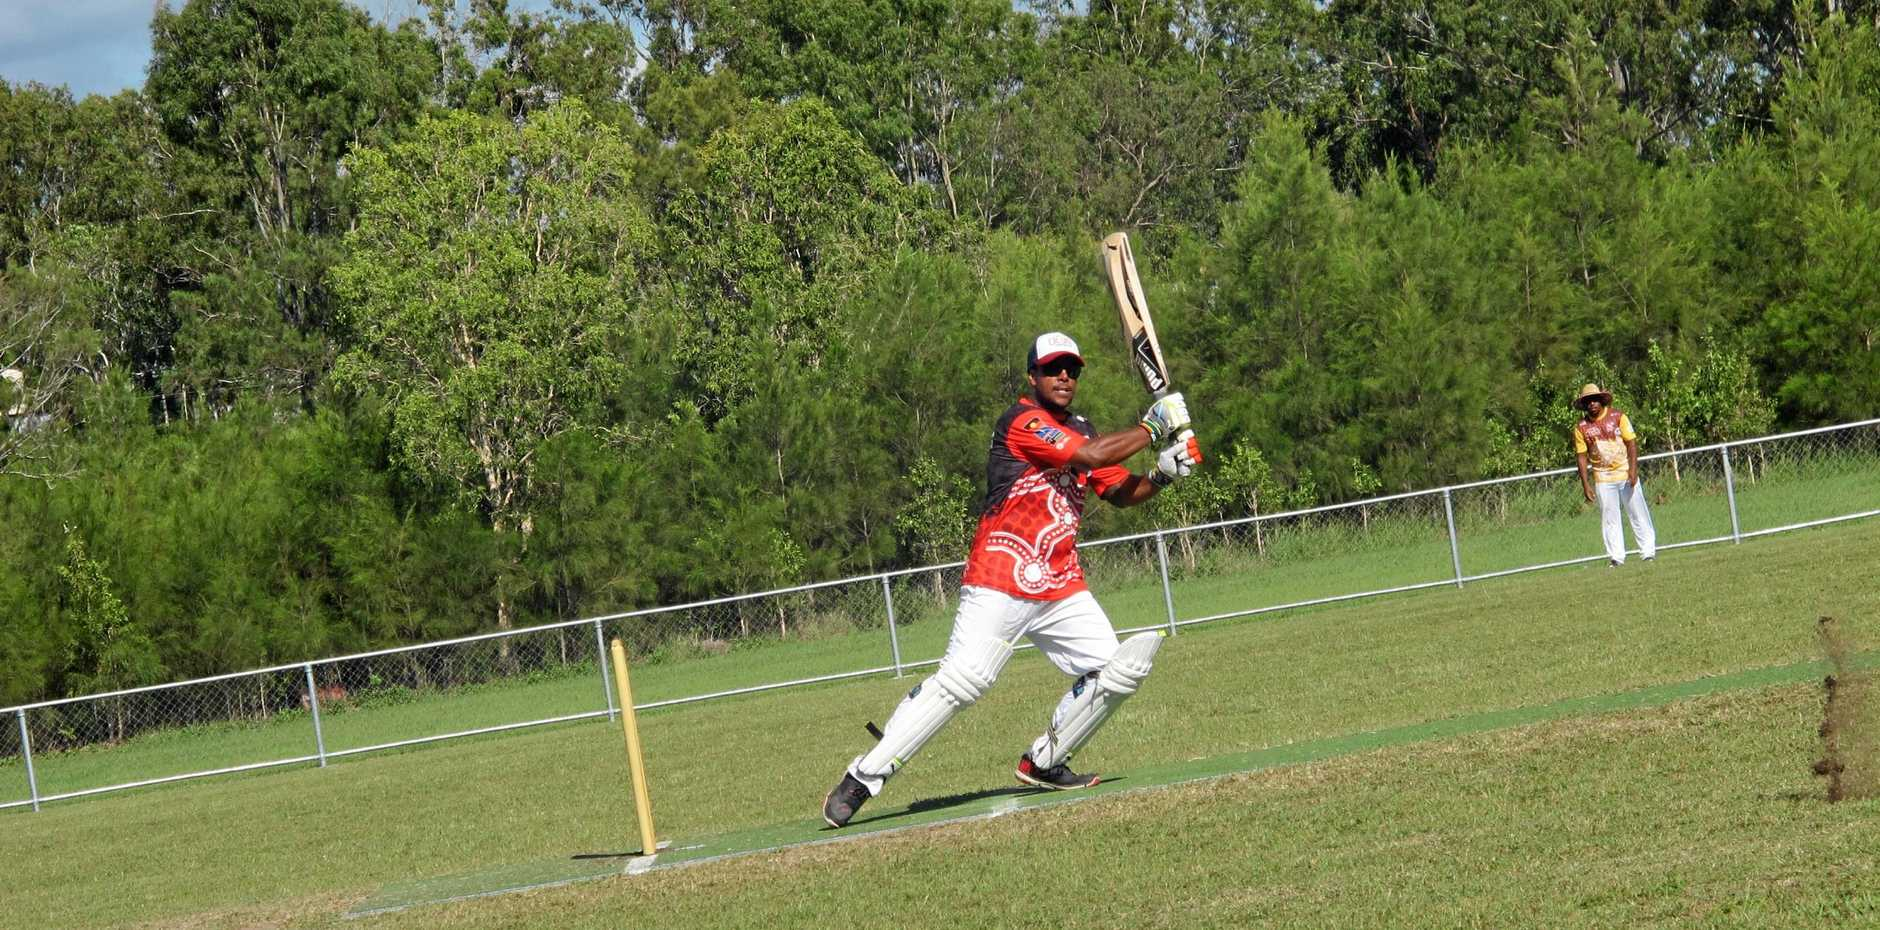 The Stan Alberts Shield carnival will be held at Rockhampton cricket grounds this weekend.